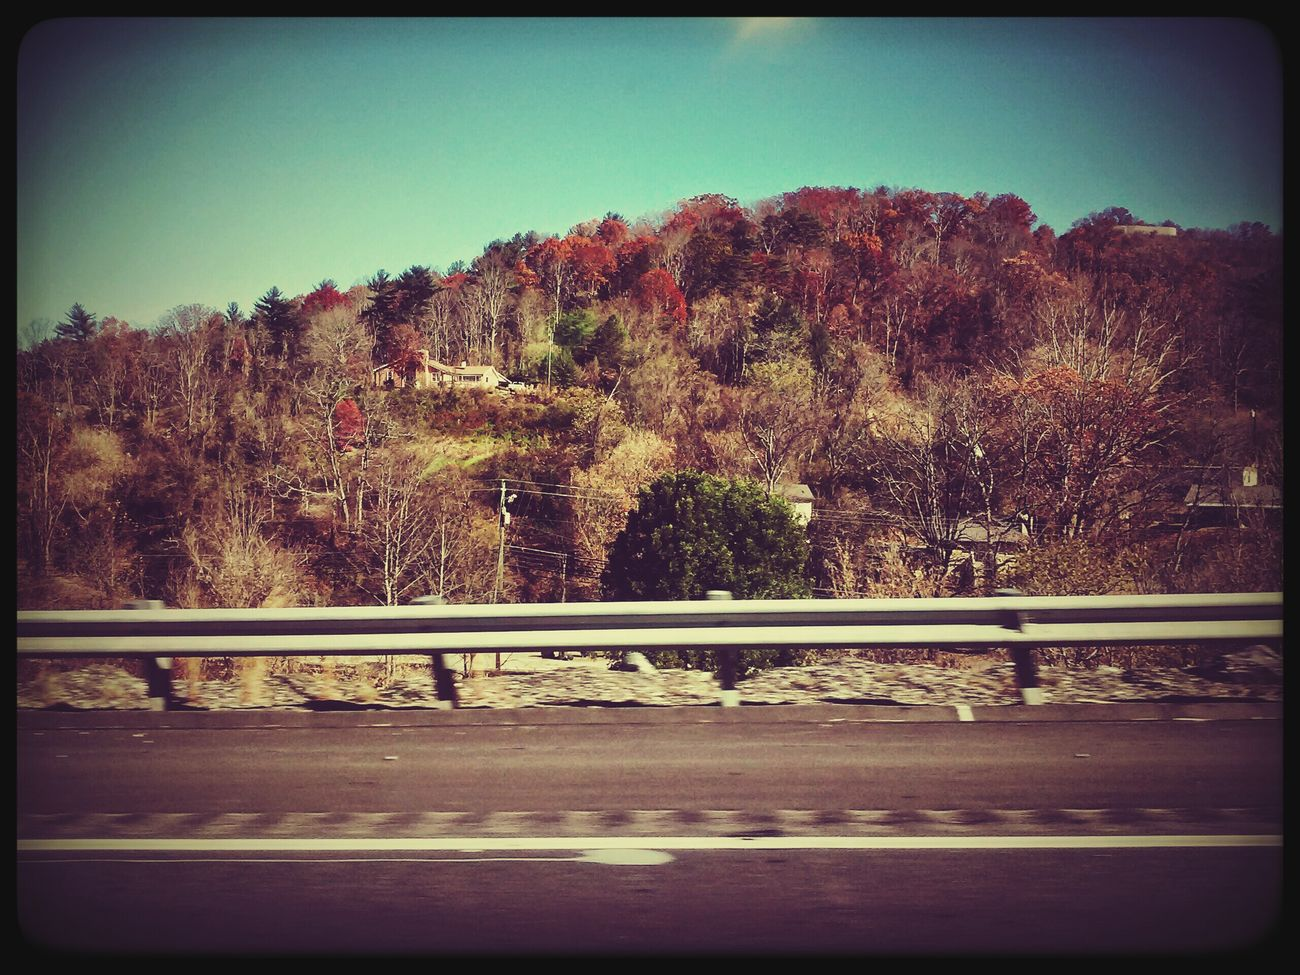 Auto Post Production Filter Sky Tree Outdoors Day No People Building Exterior Nature Mountain Road Dream Big Aim High Open Minded Happiness Vintage Hobby💛 The World Is My Canvas 🎨 Urban Photography Asheville Mountains Breathtaking_beauty Lifestyles Cold Temperature Nature's Diversities Clear Sky Close Your Eyes And Feel It Freshness